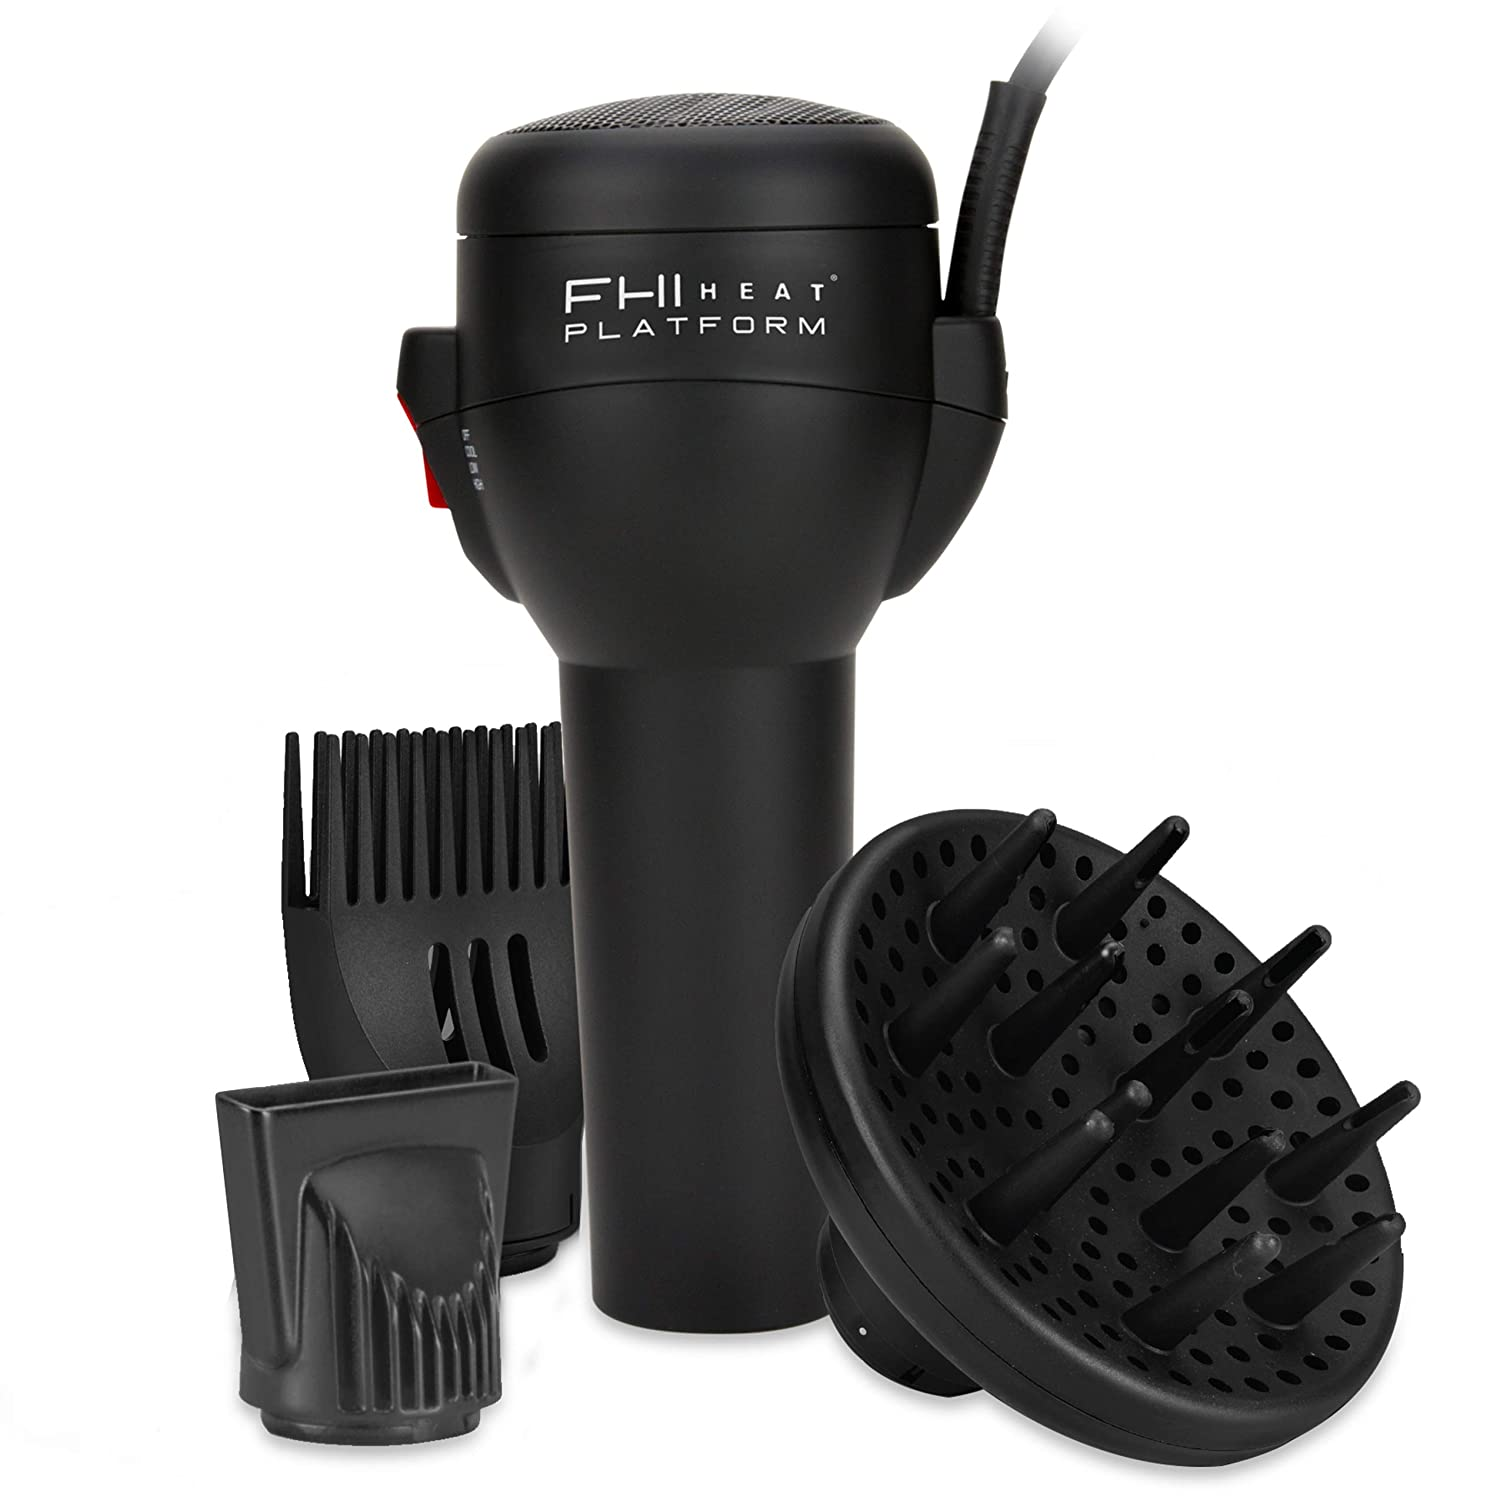 FHI Heat Platform Blow Out Hair Dryer – Handle-less, Ionic Lightweight